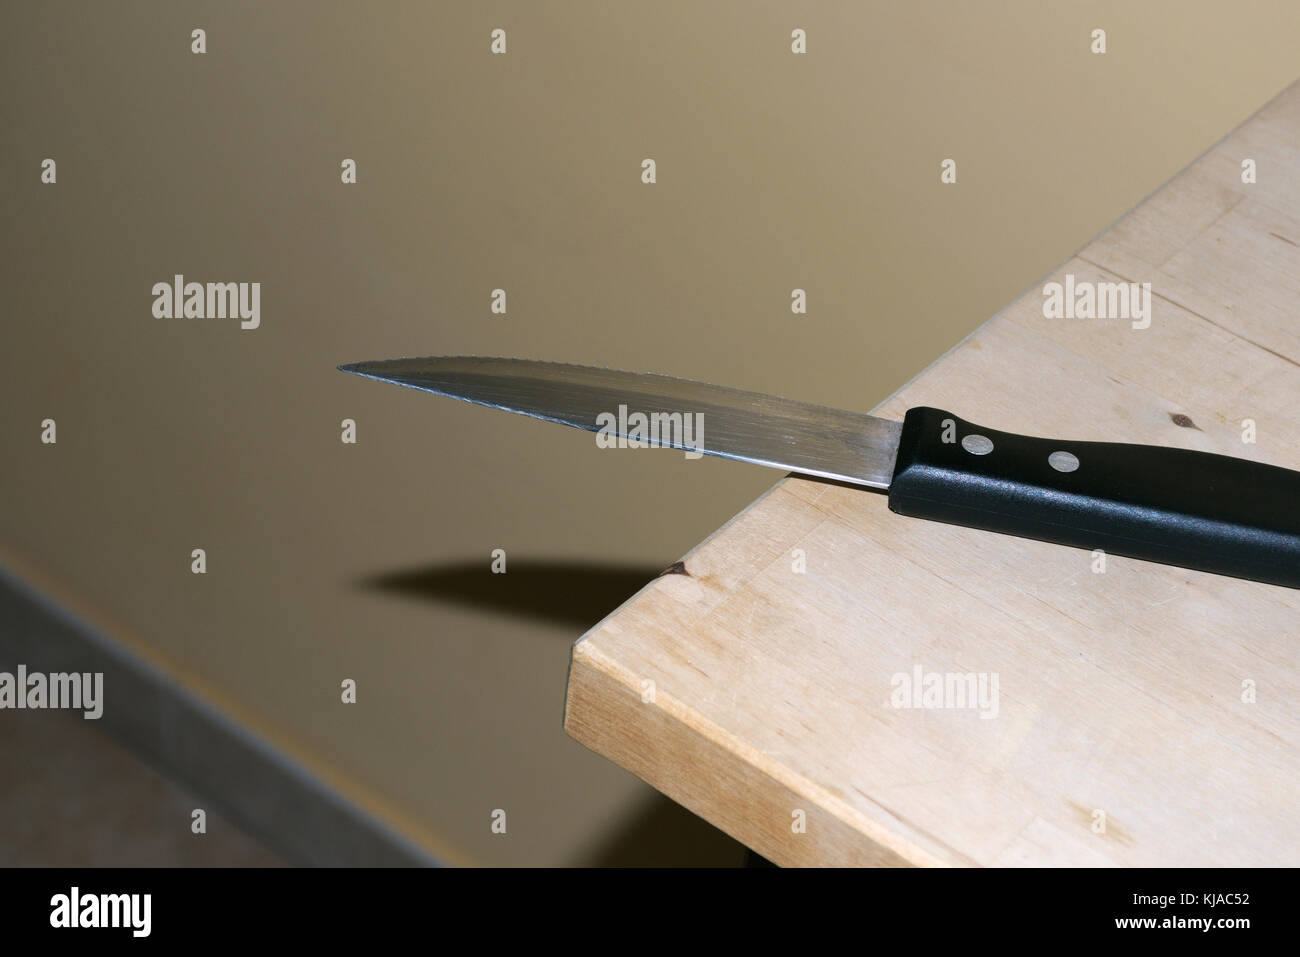 kitchen knife on table - Stock Image